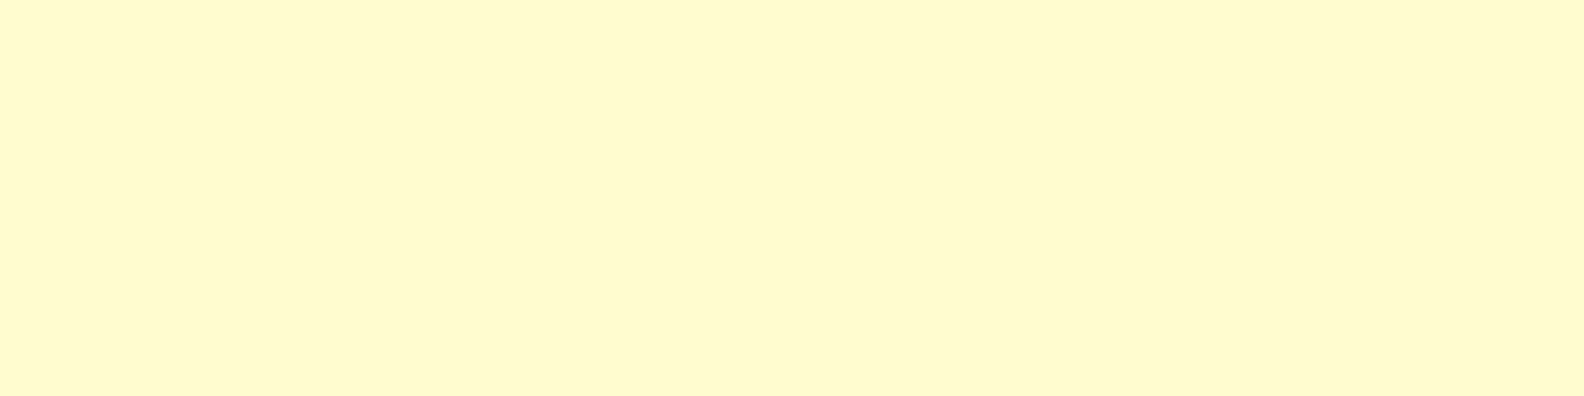 1584x396 Cream Solid Color Background